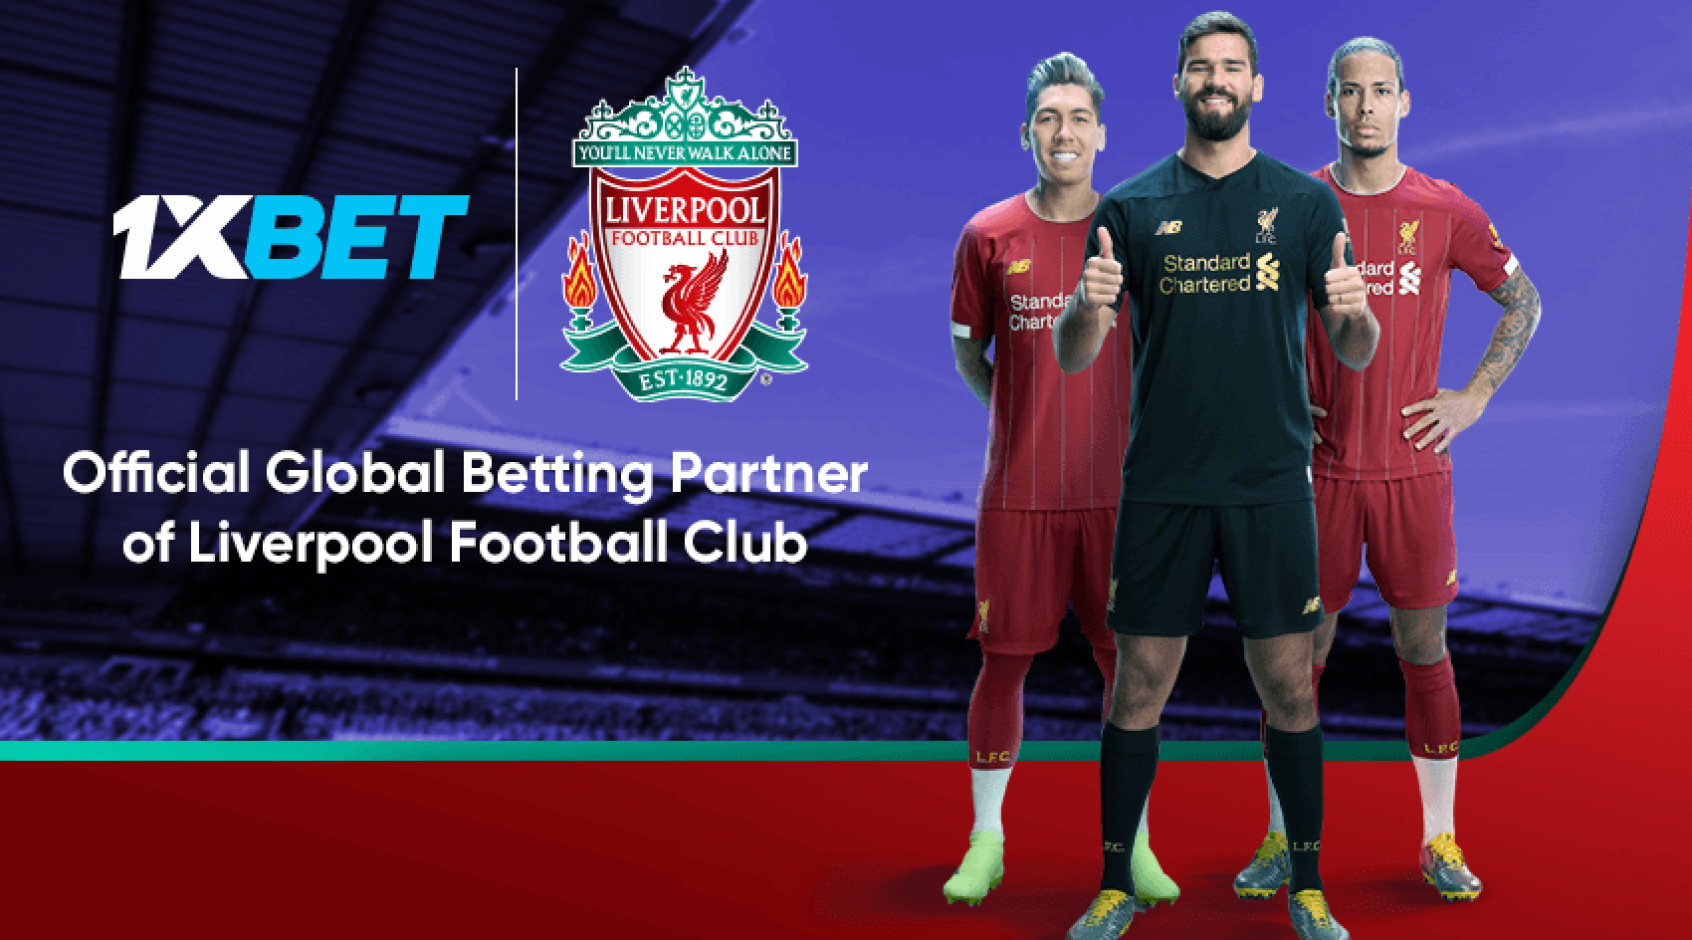 FC Liverpool and 1xBet